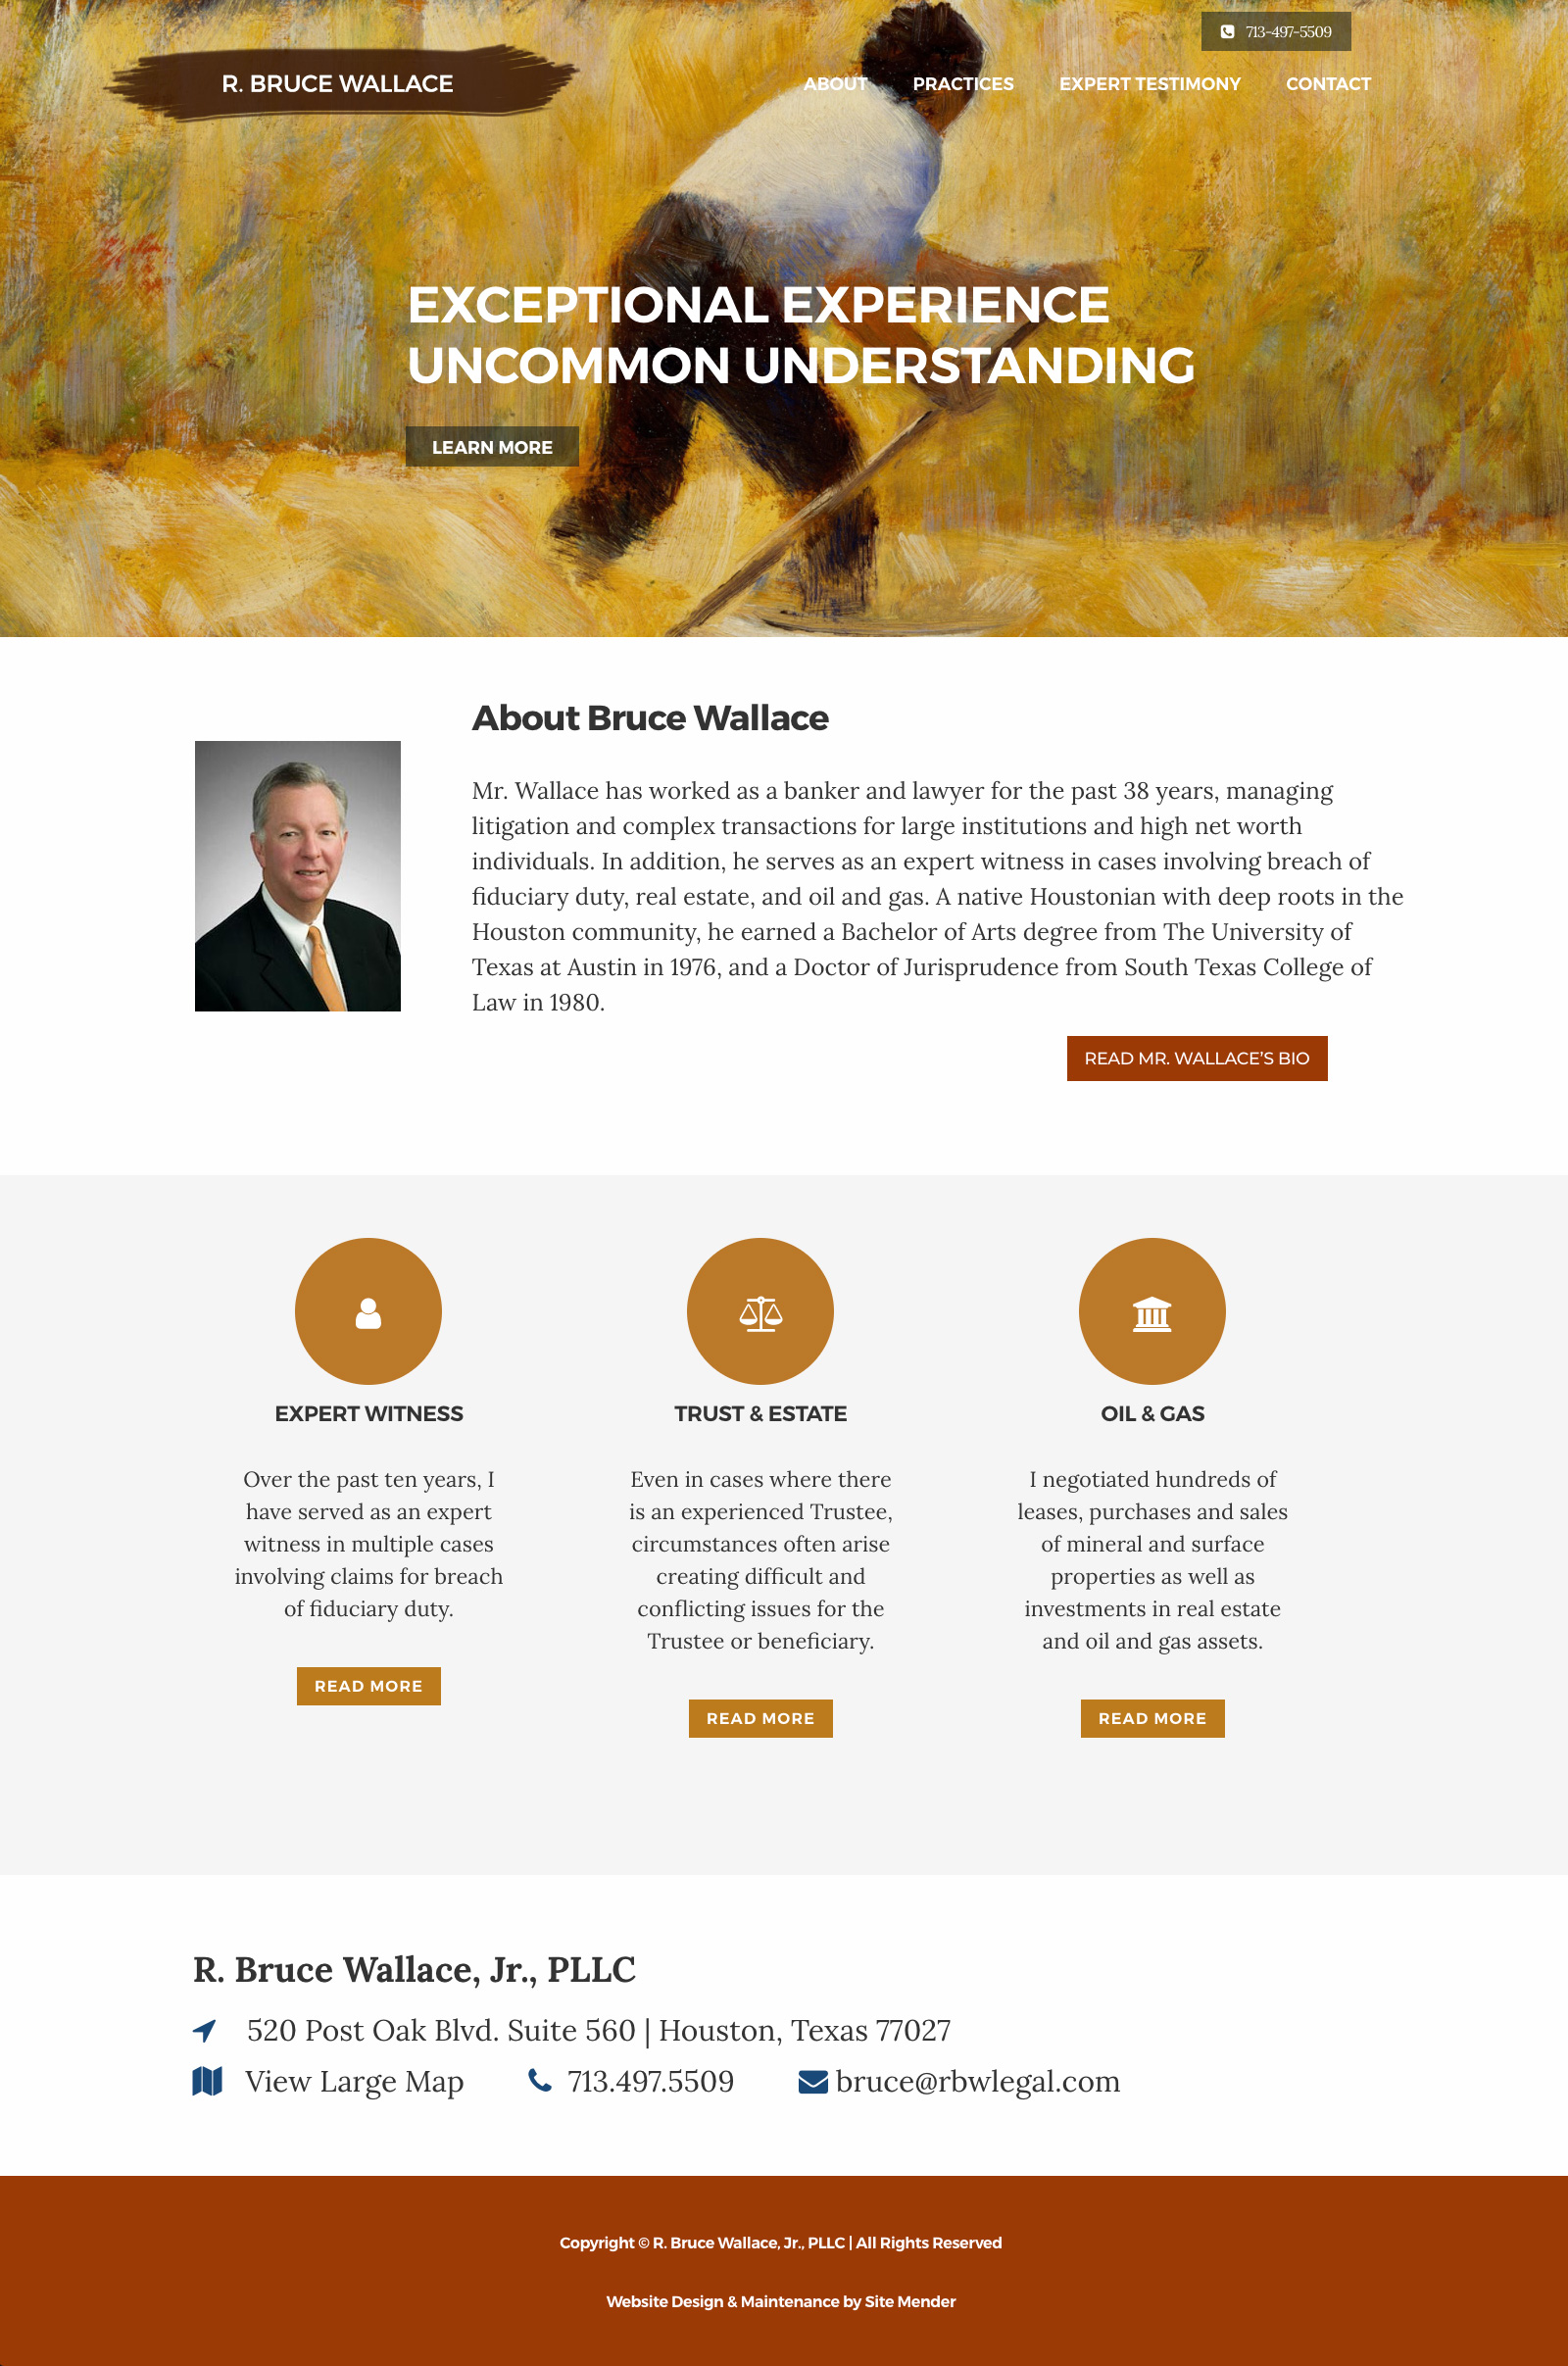 law firm website design for houston attorney r. bruce wallace